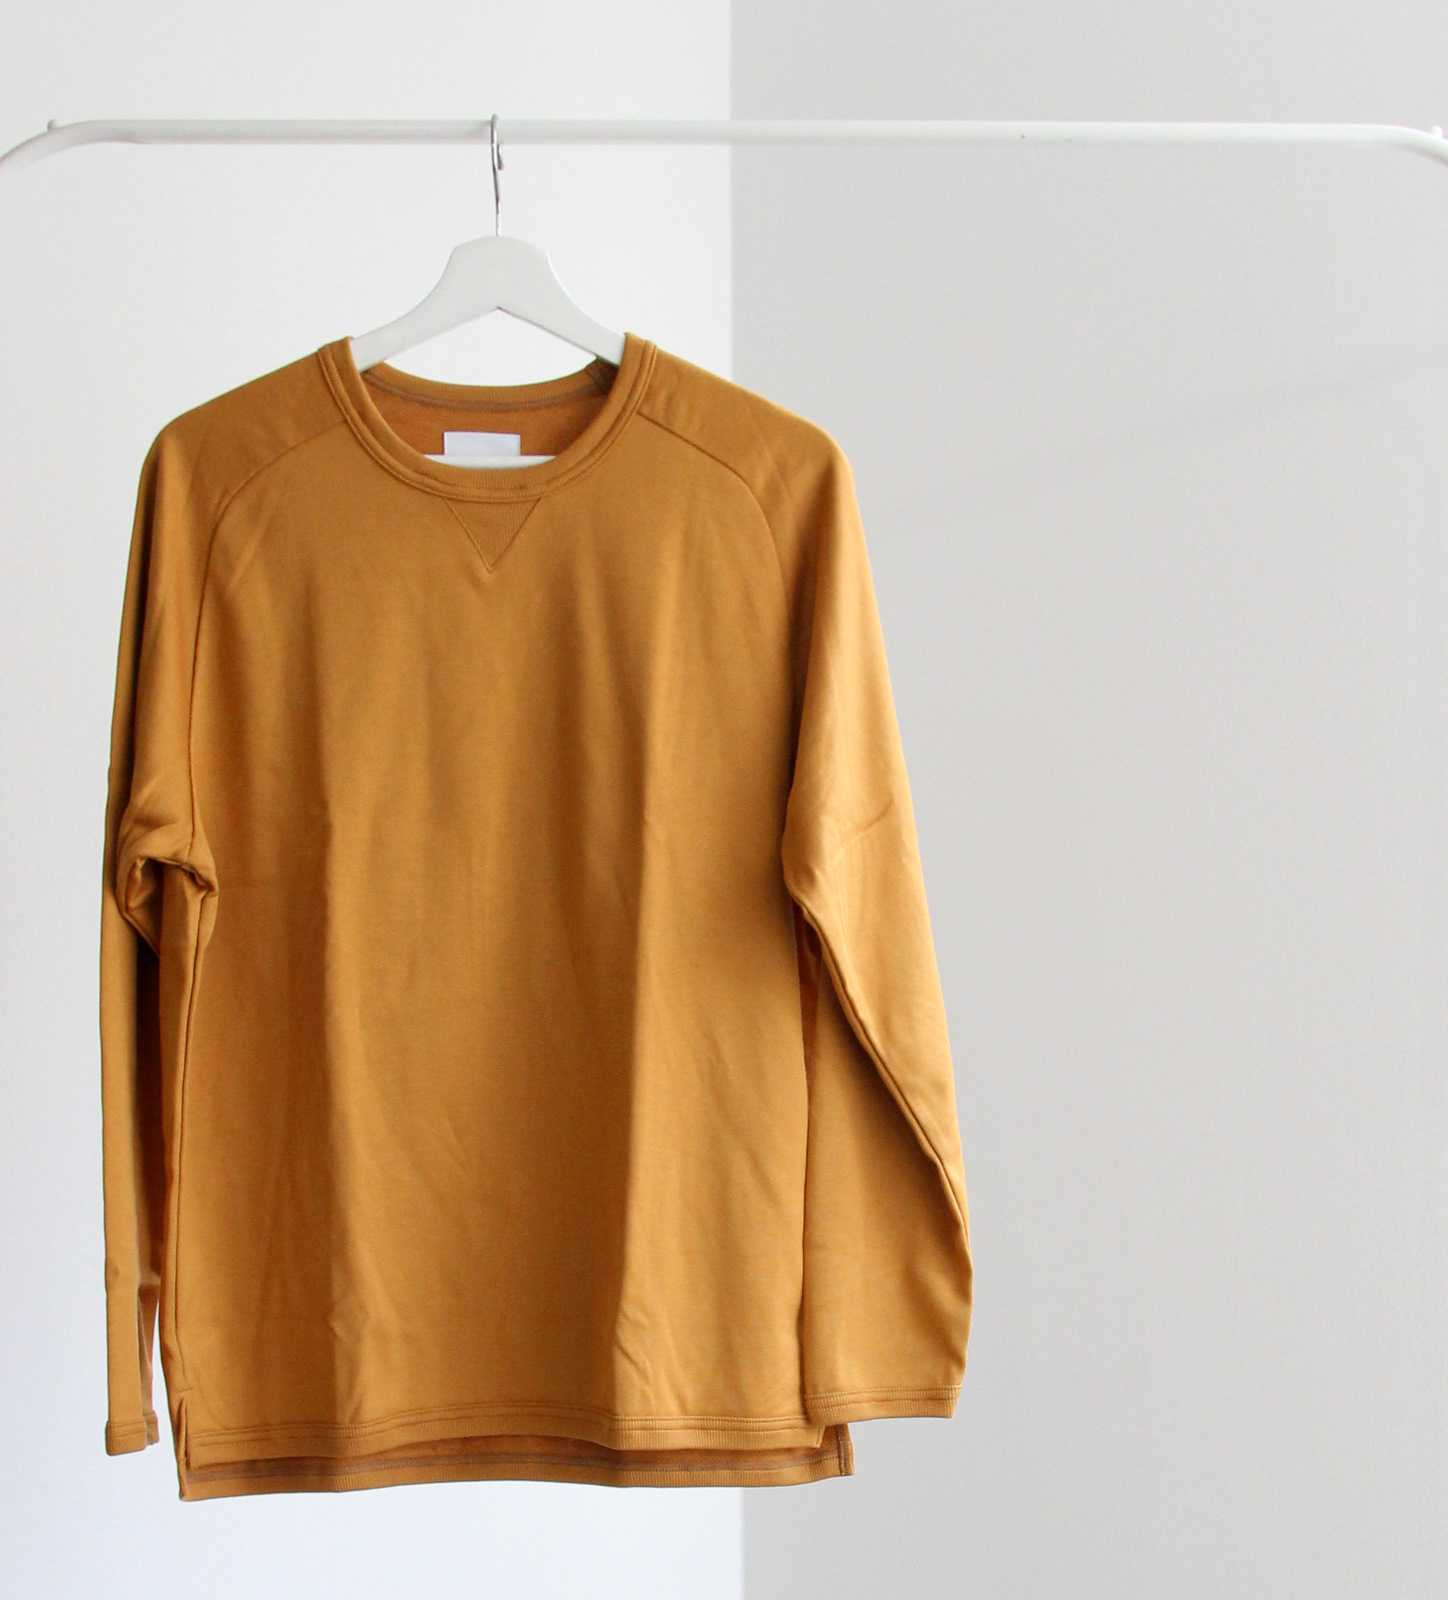 Tokyo Made Dress Sweat Shirt_c0379477_15541529.jpg